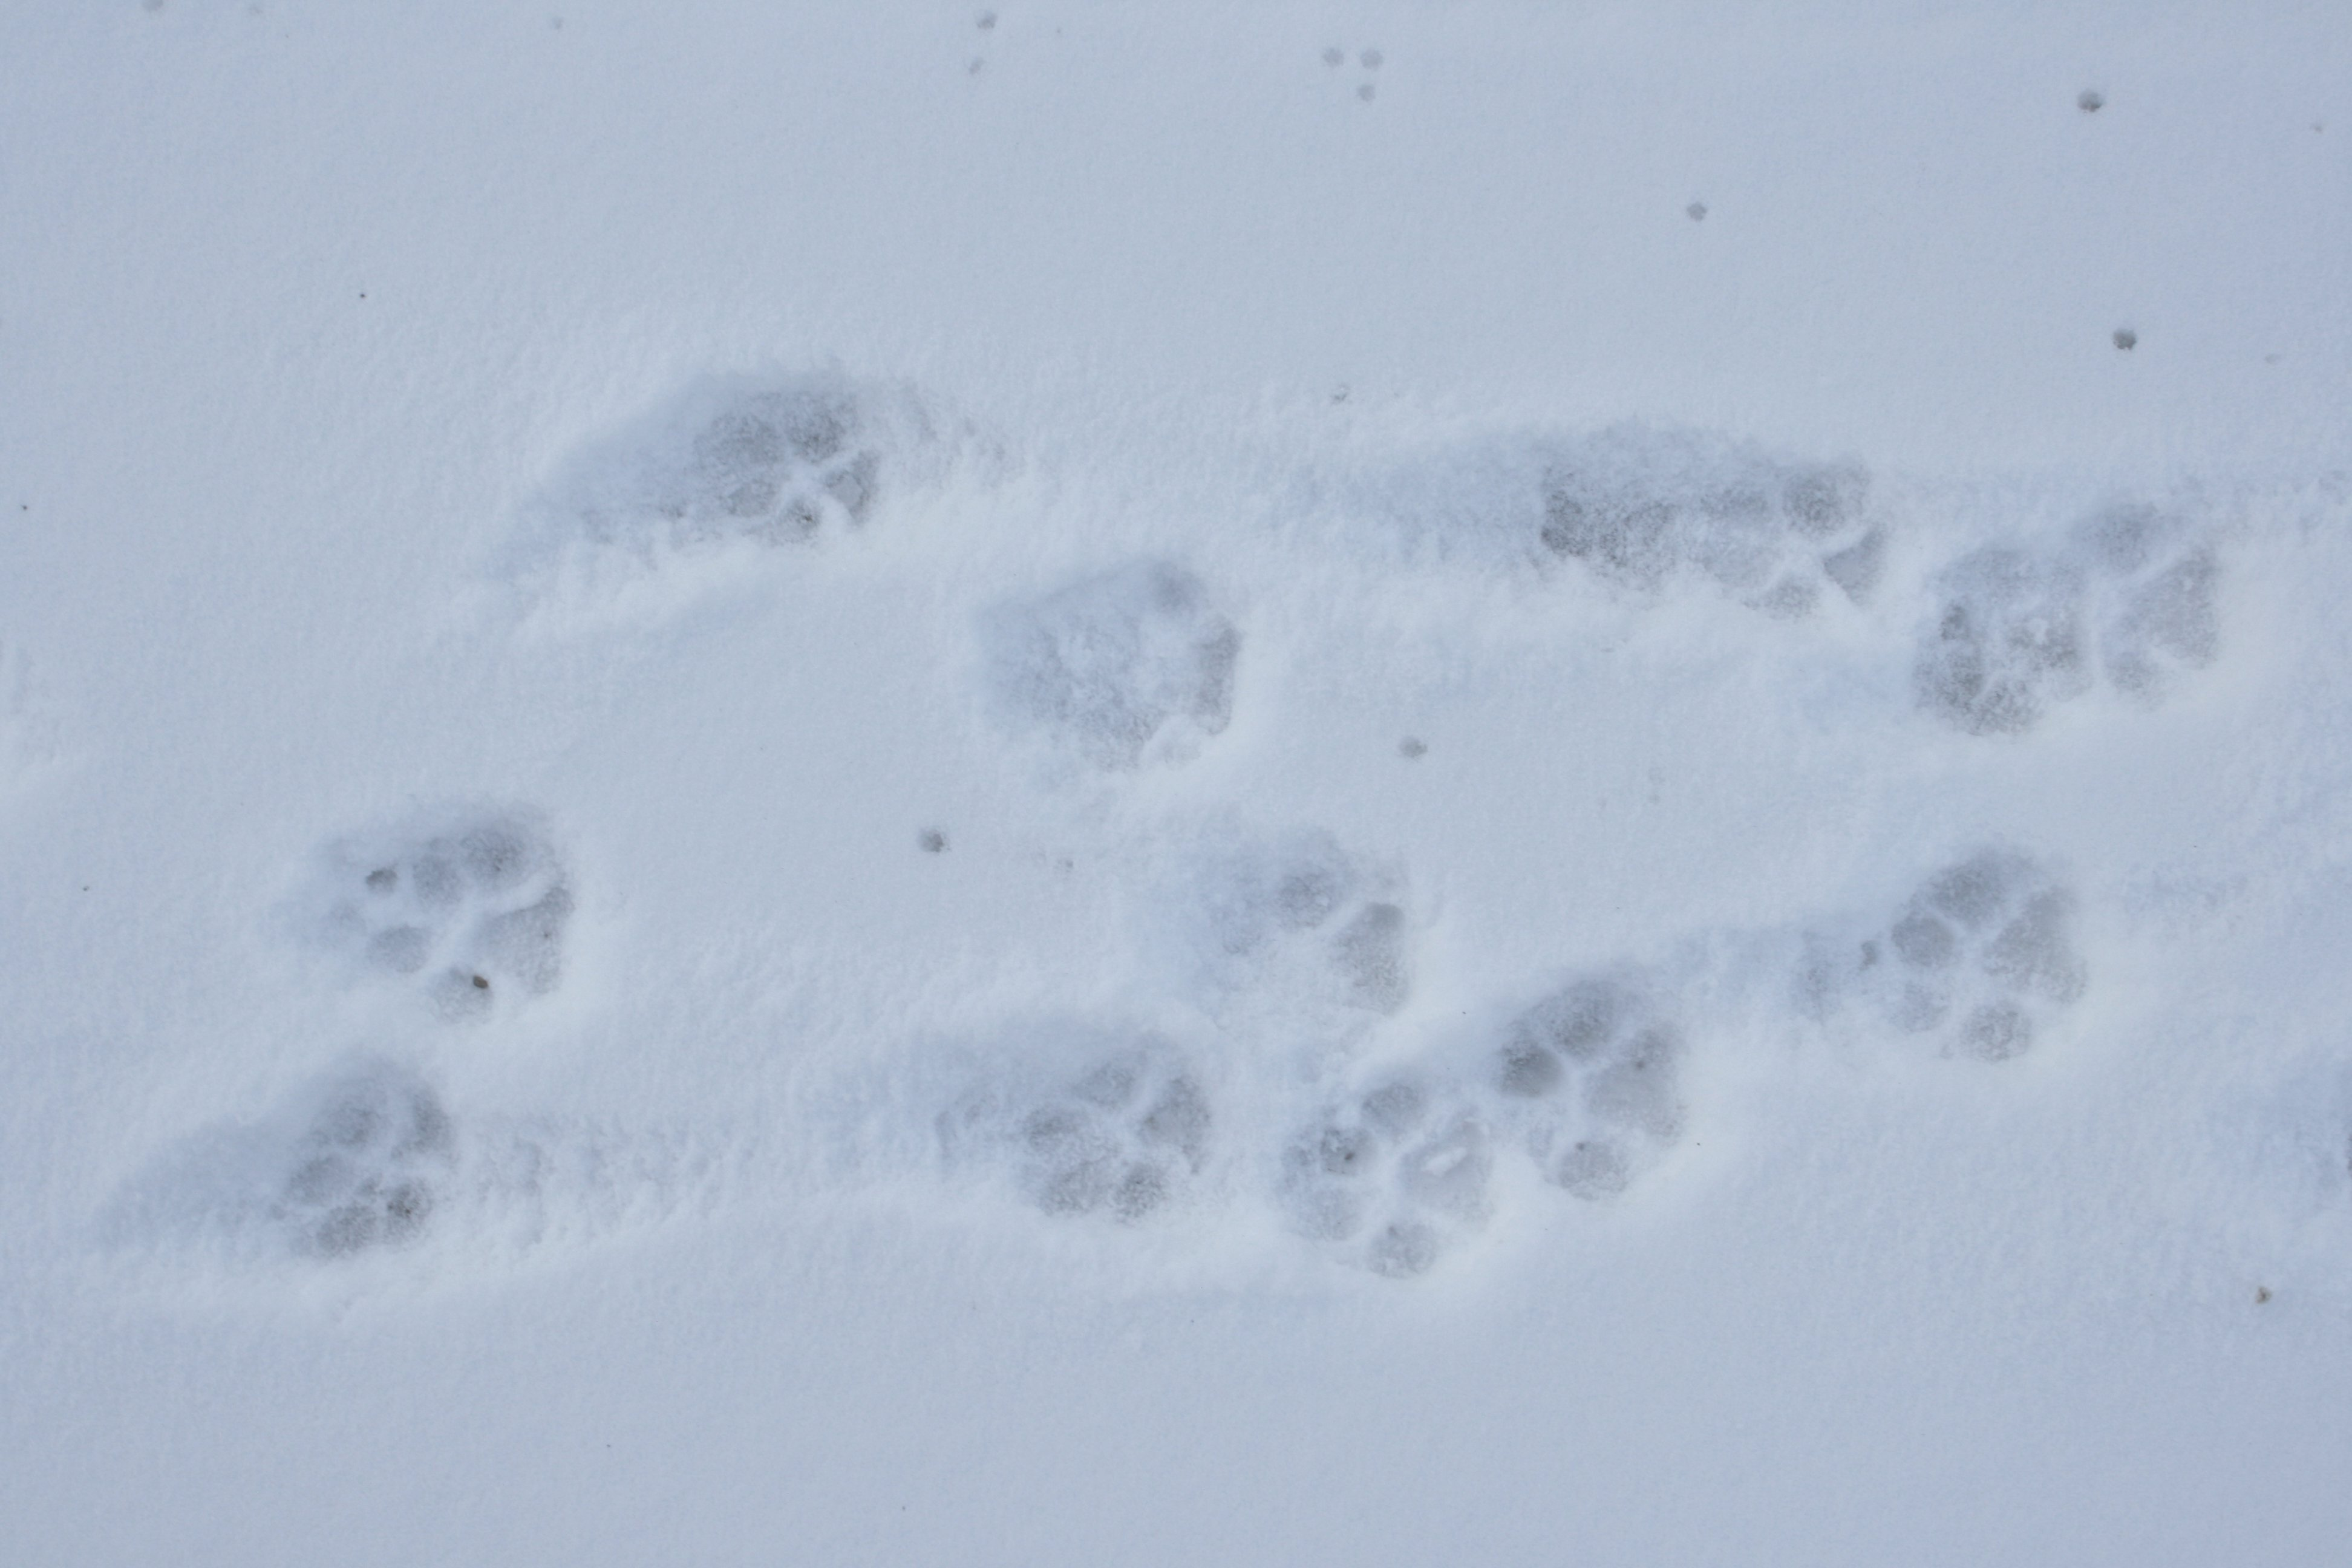 Dog paw prints in the snow picture free photograph photos public dog paw prints in the snow publicscrutiny Choice Image